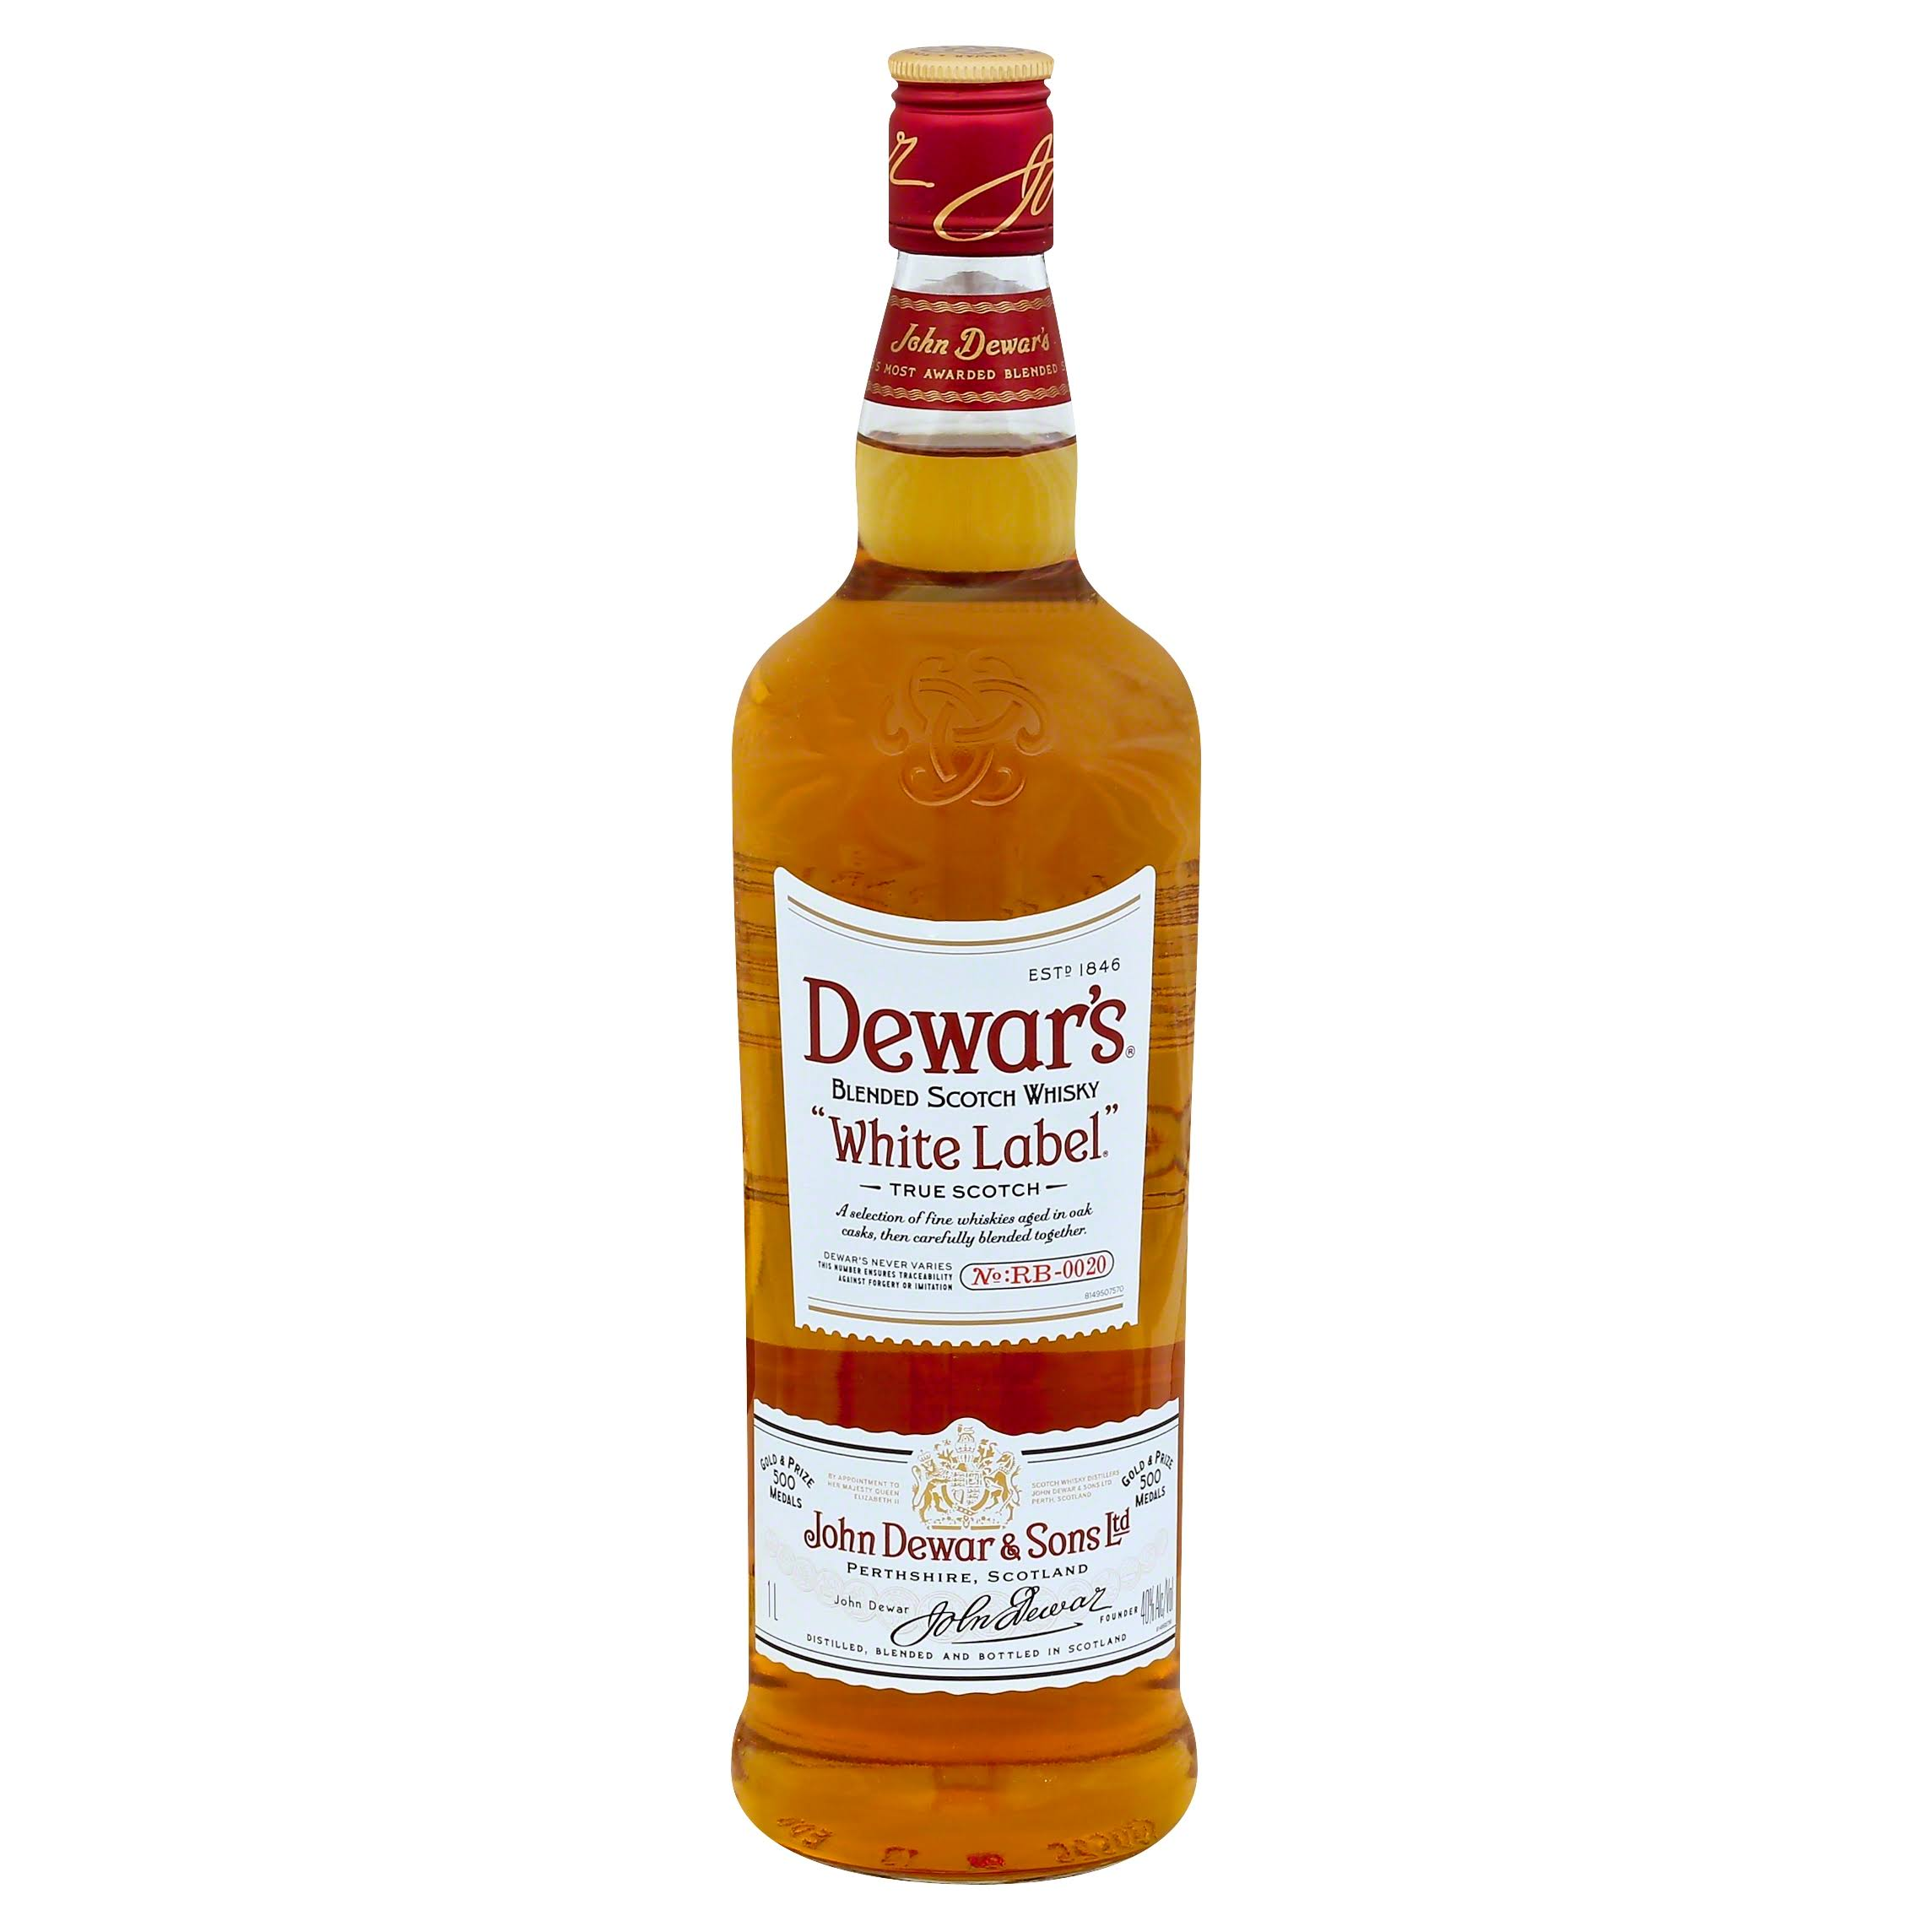 Dewar's White Label Scotch Whiskey - 1 L bottle